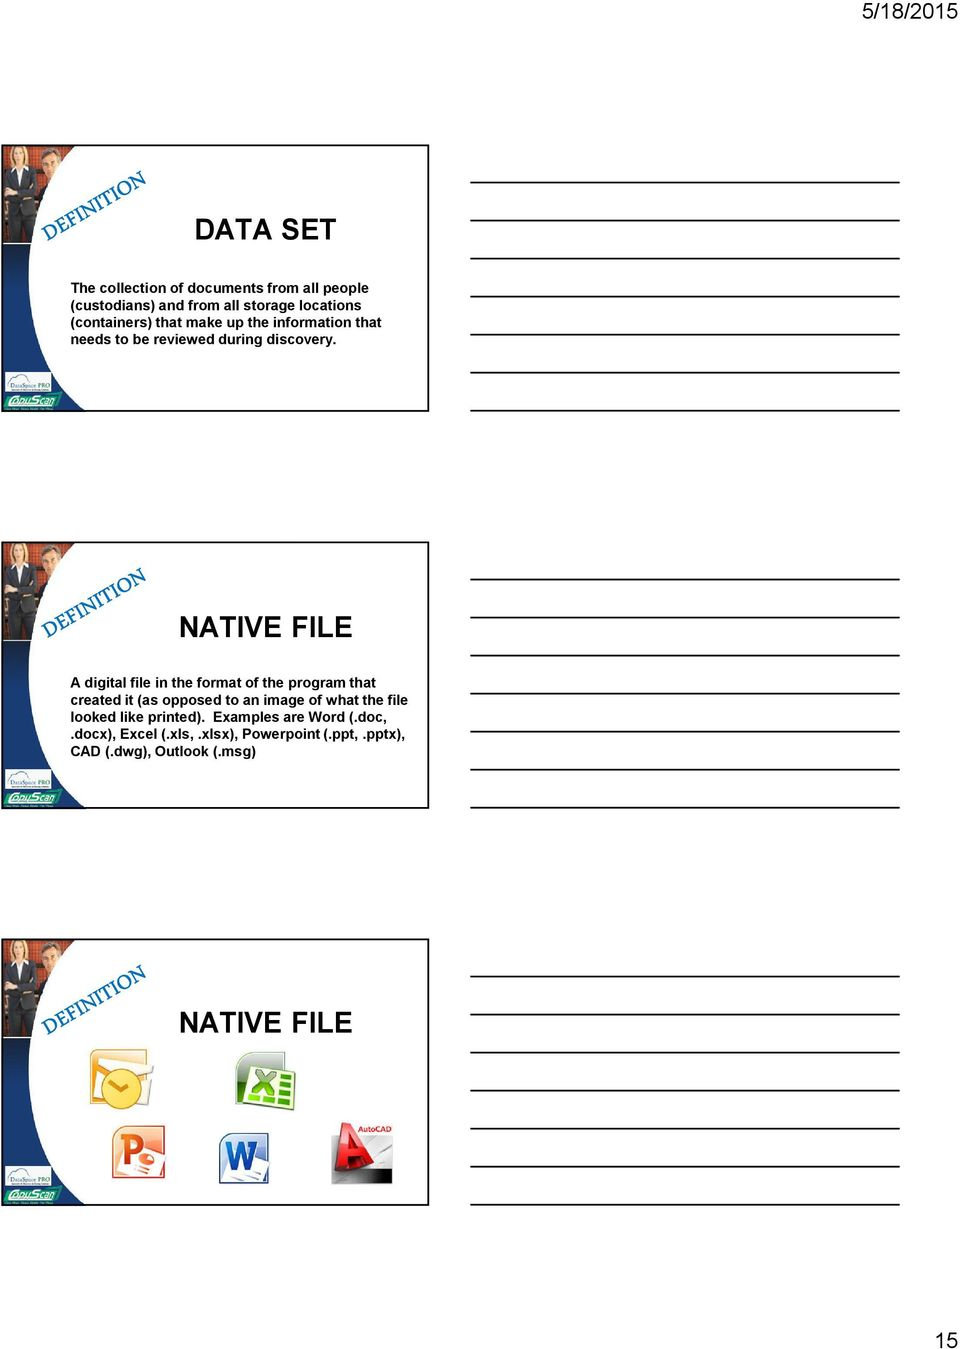 NATIVE FILE A digital file in the format of the program that created it (as opposed to an image of what the